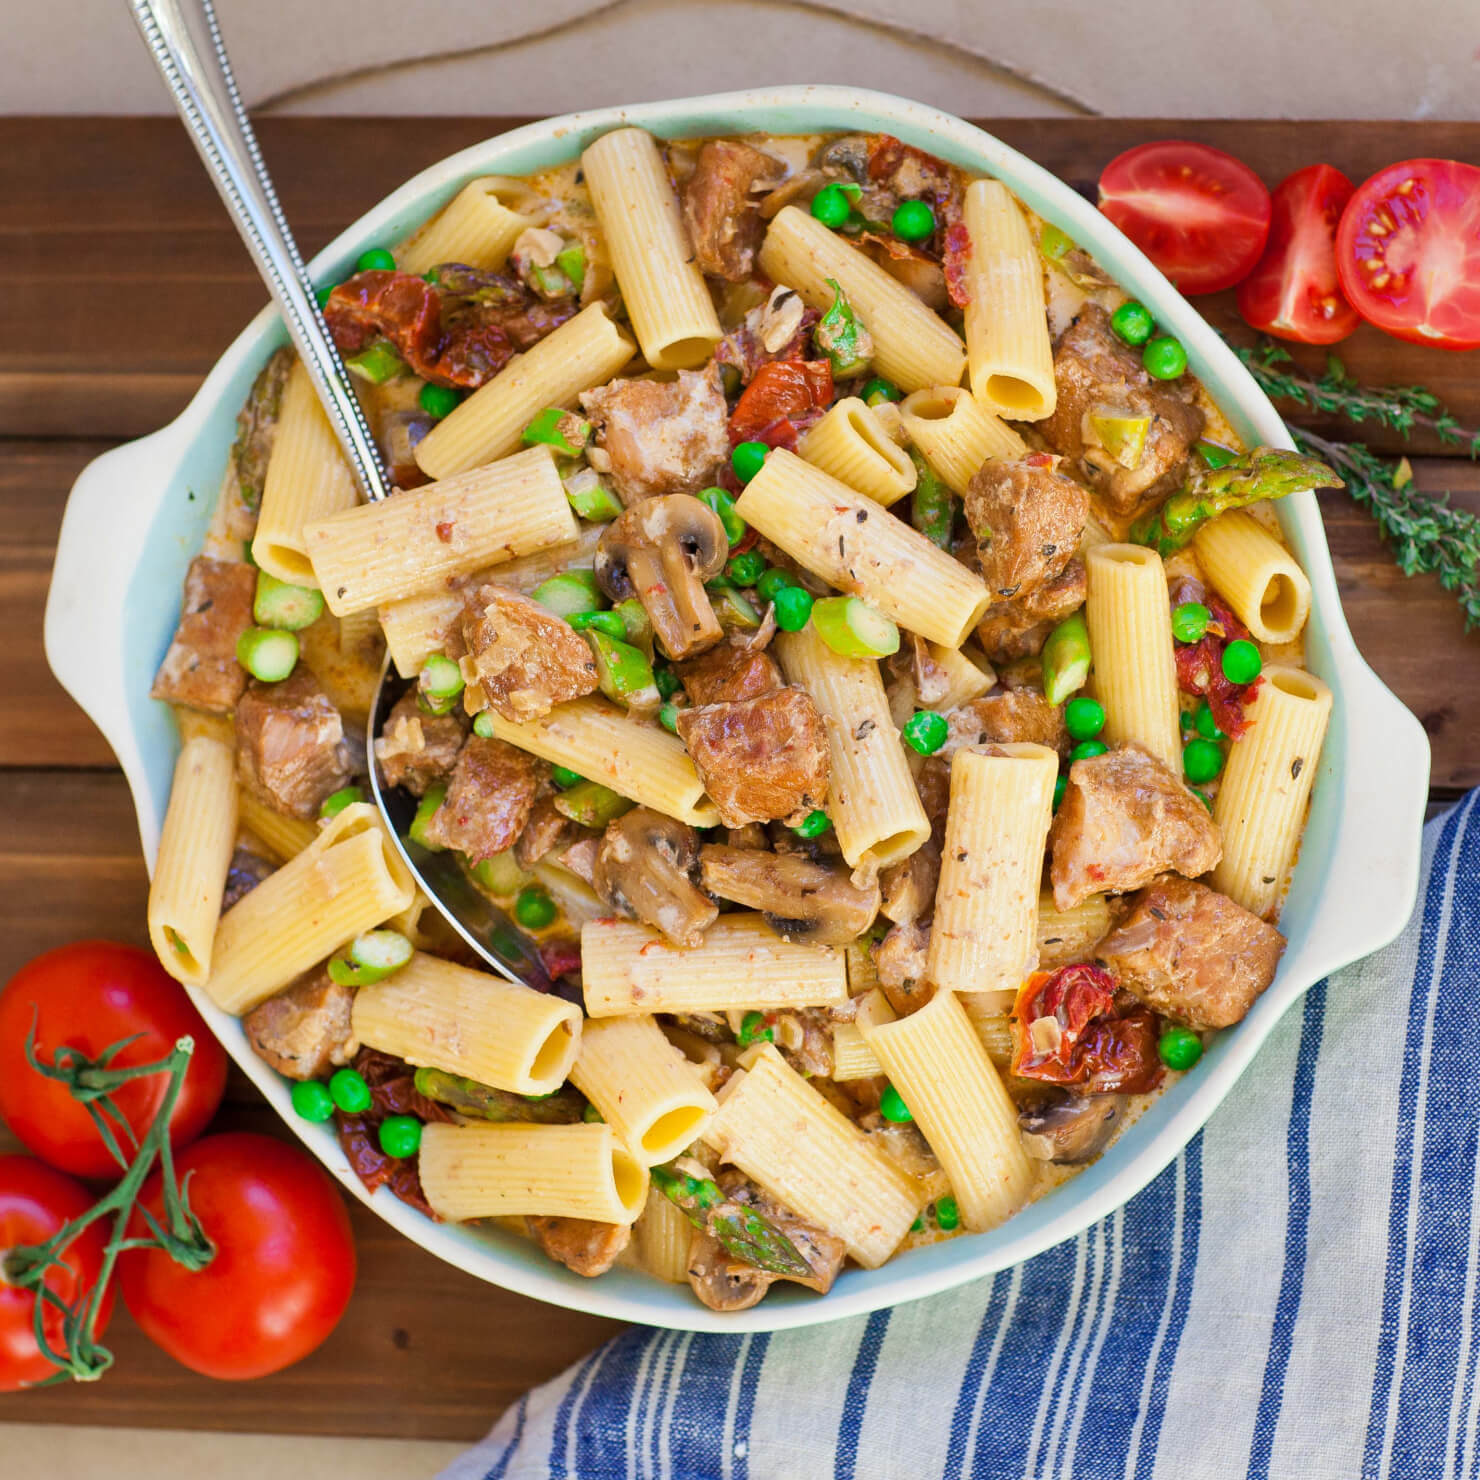 Creamy Sweet & Smoky Pork Pasta